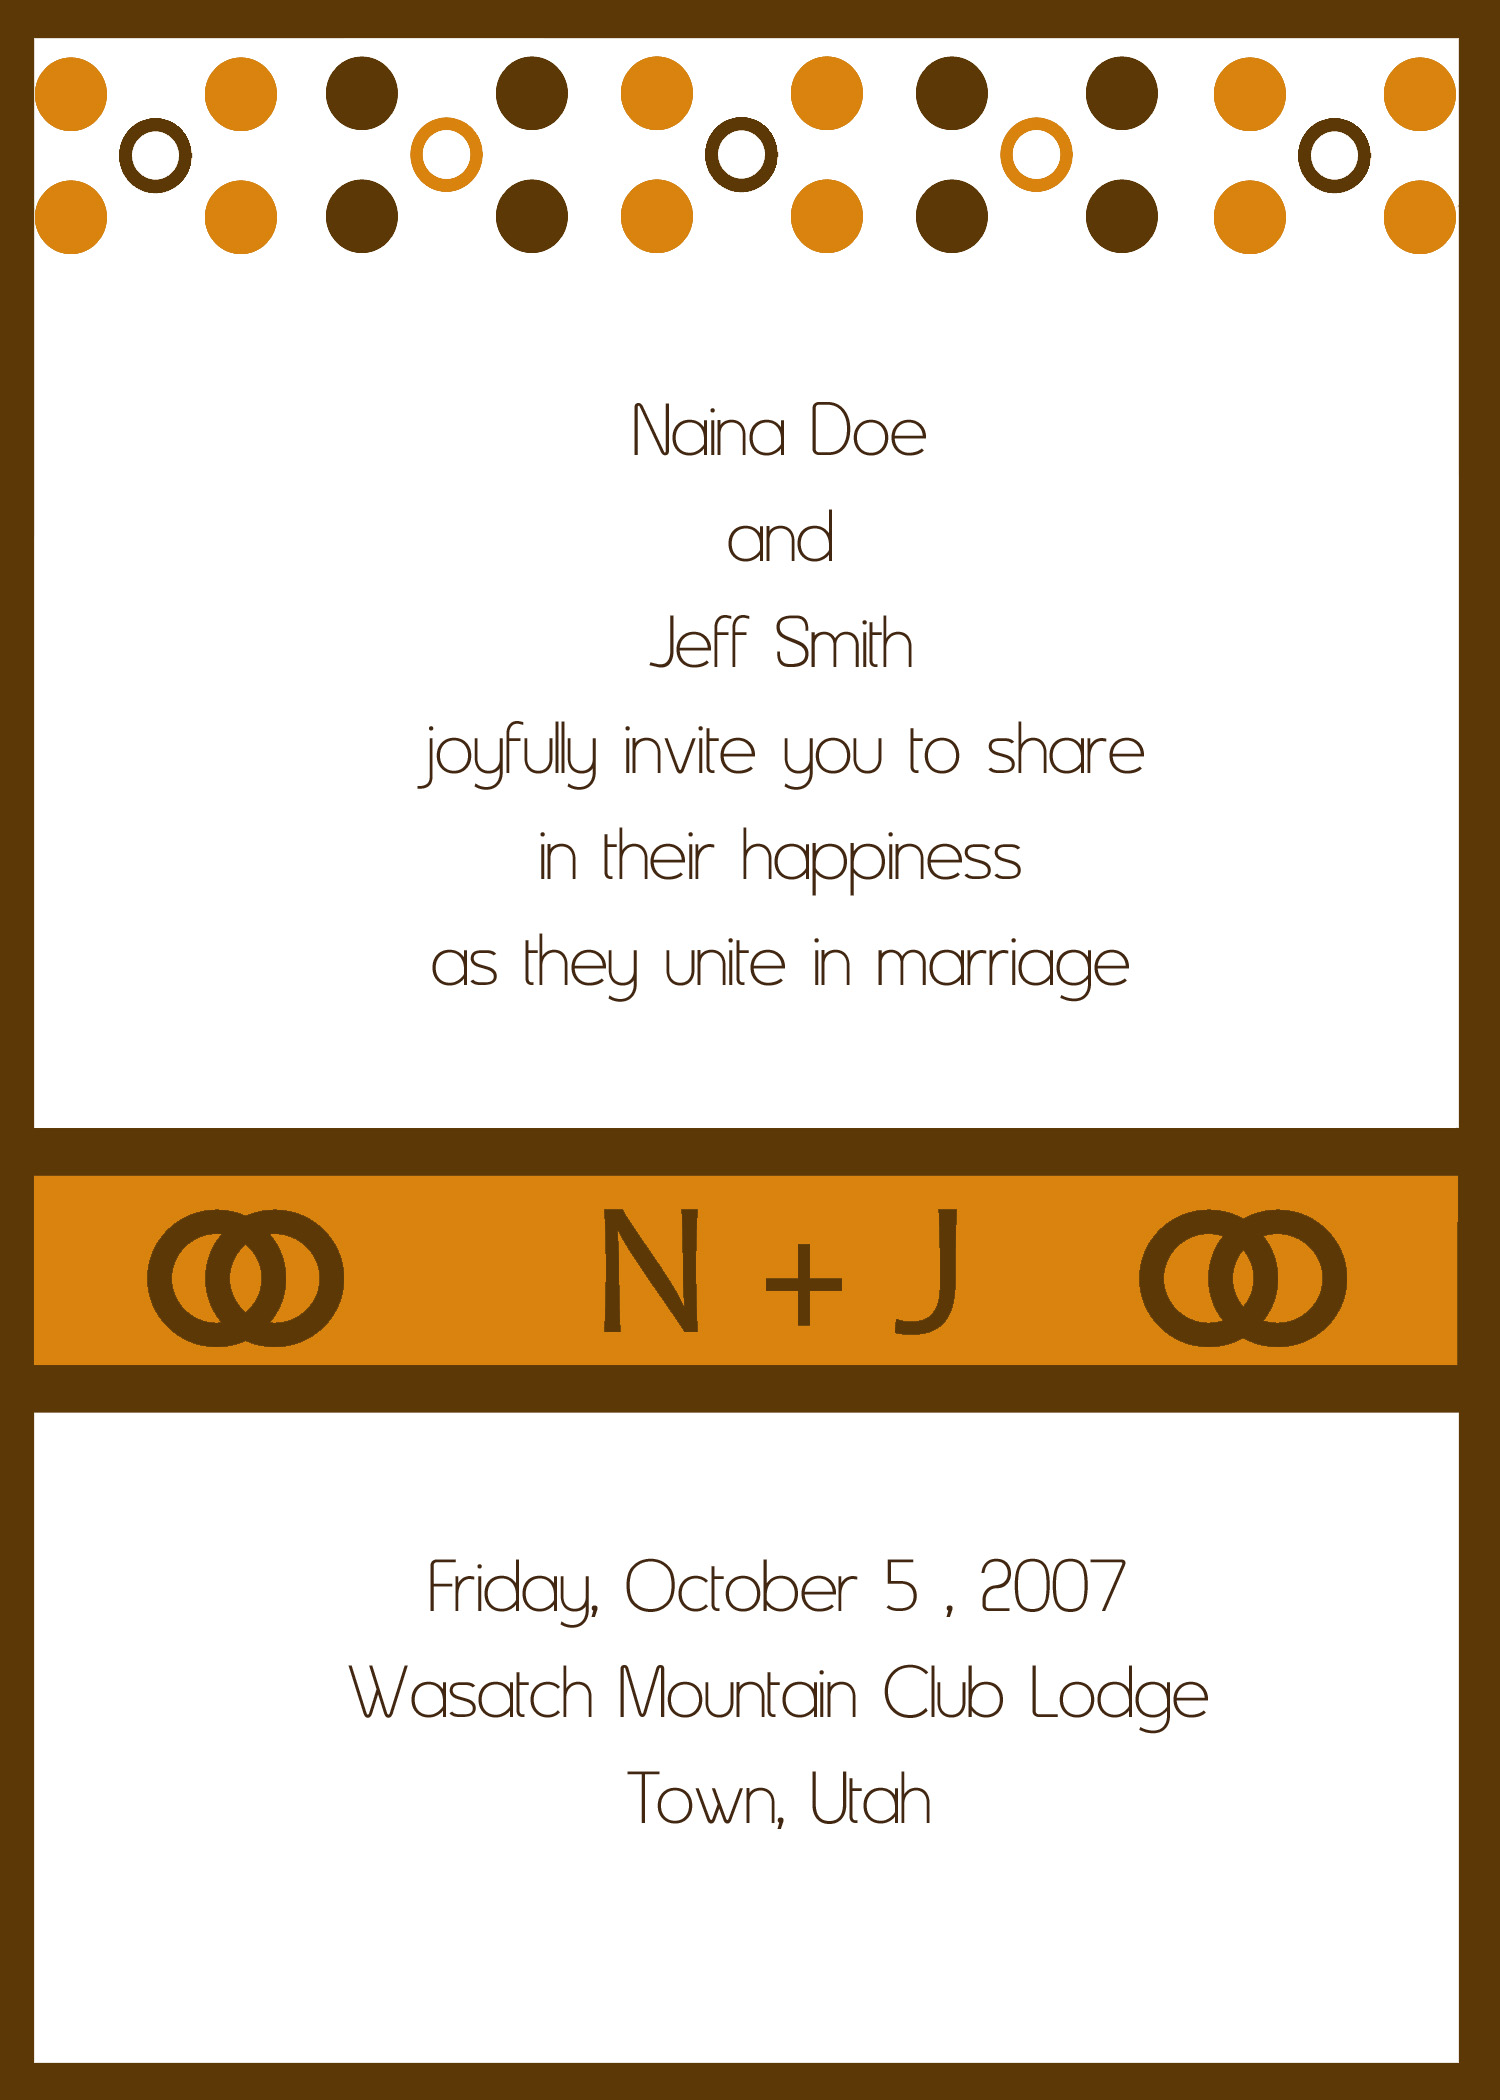 Rsvp letters stand for for Definition of rsvp in invitations